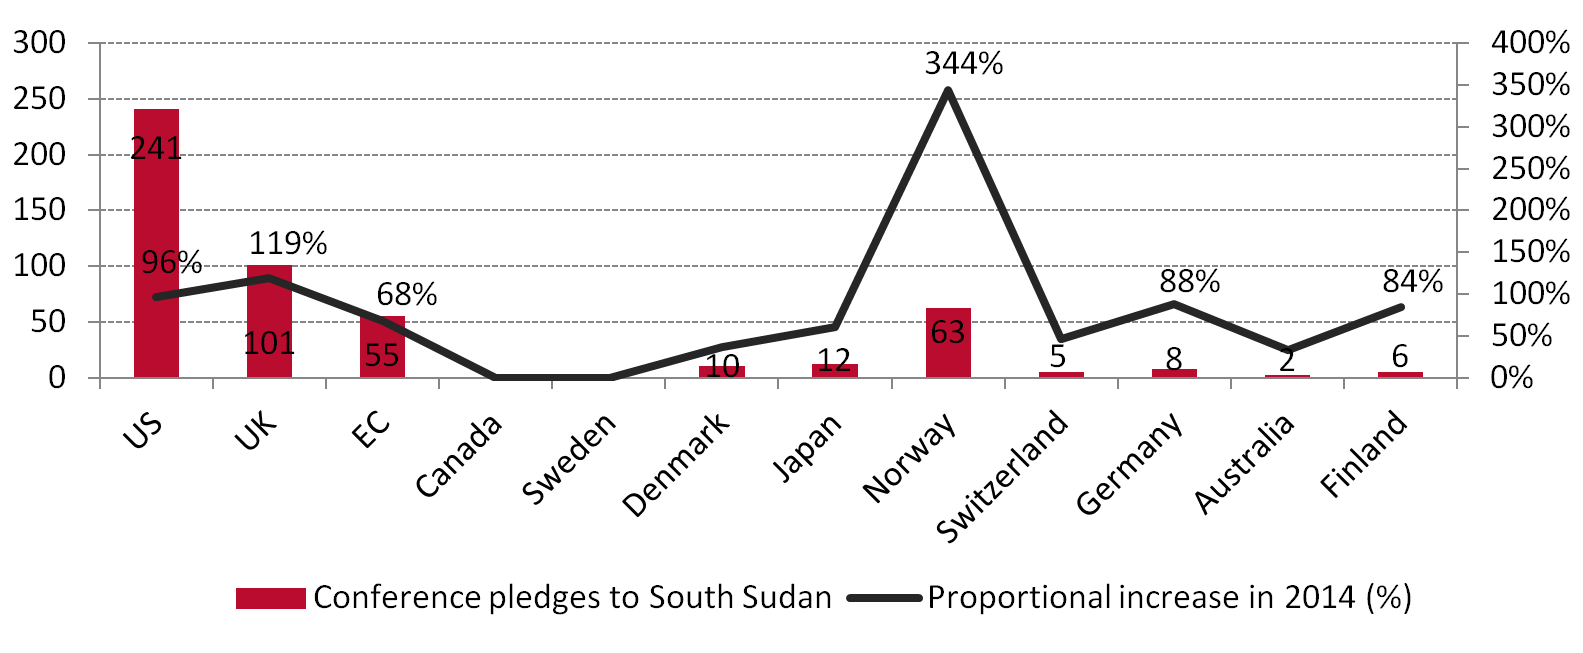 Mixed donor response to Oslo Humanitarian Conference on South Sudan